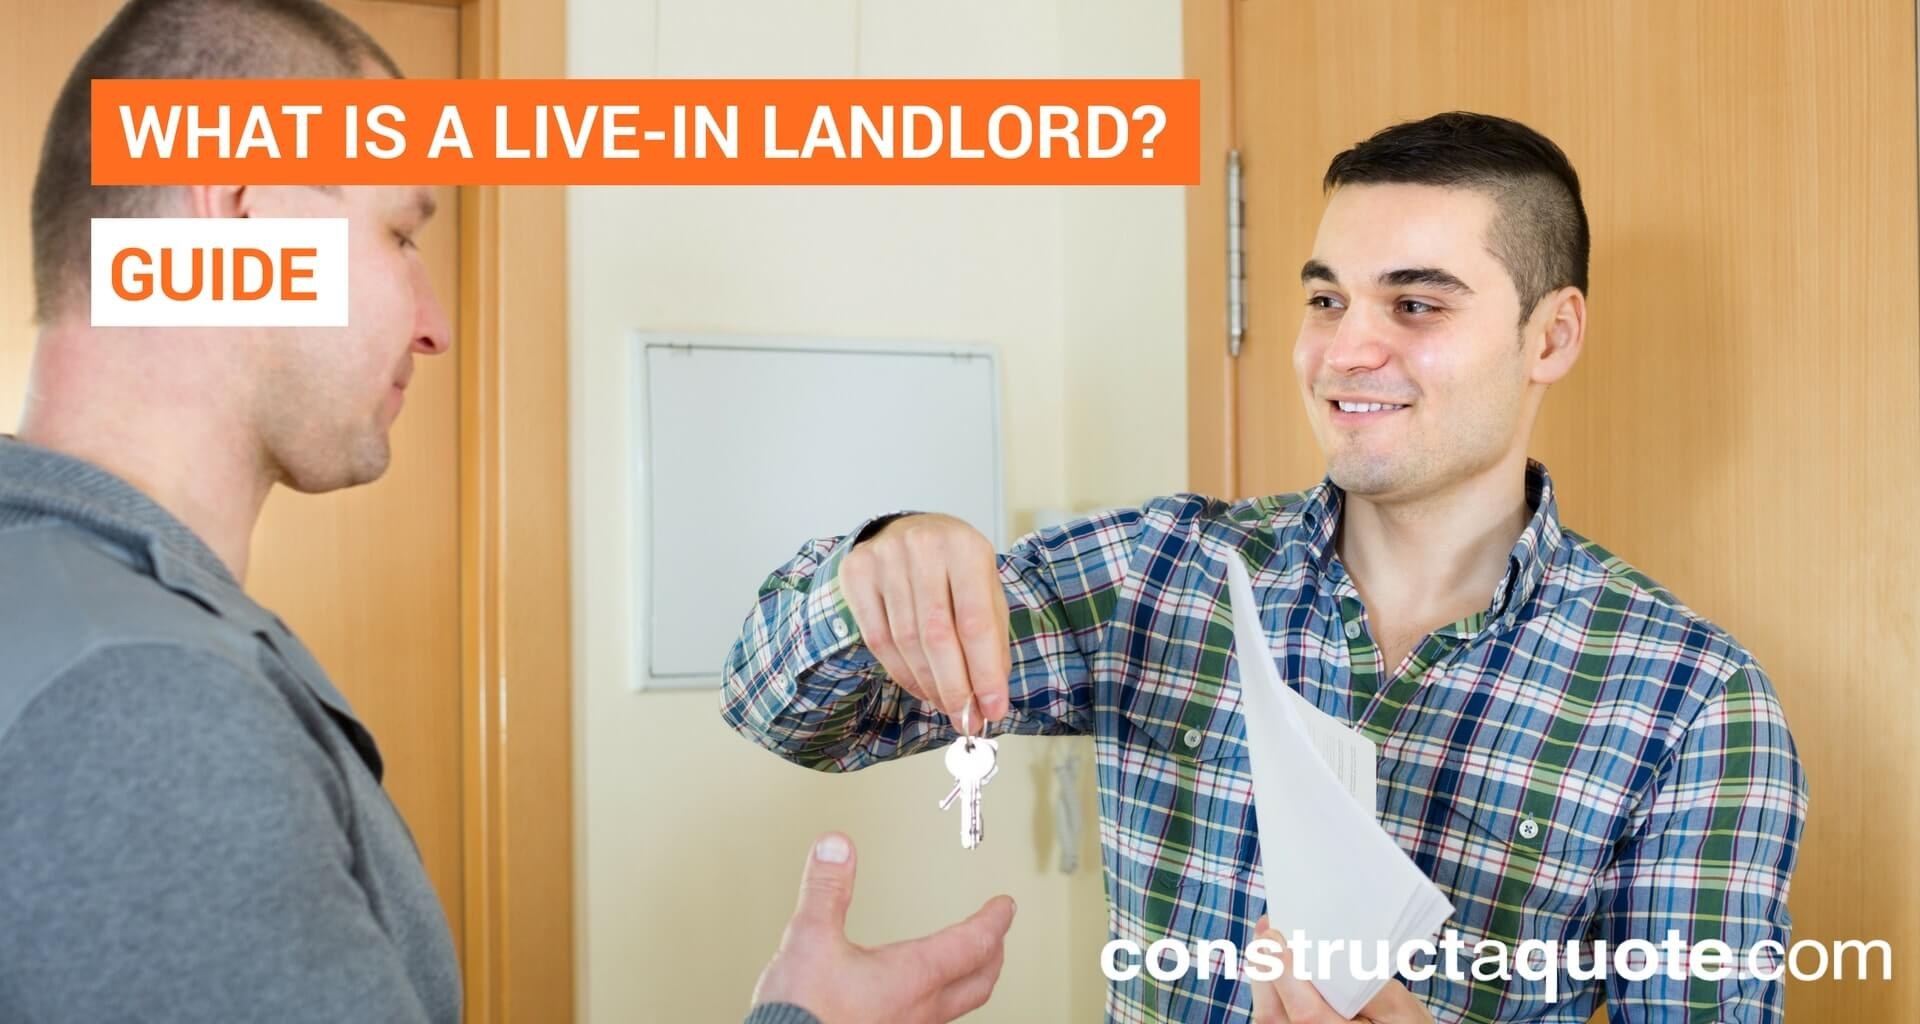 What is a live-in landlord?